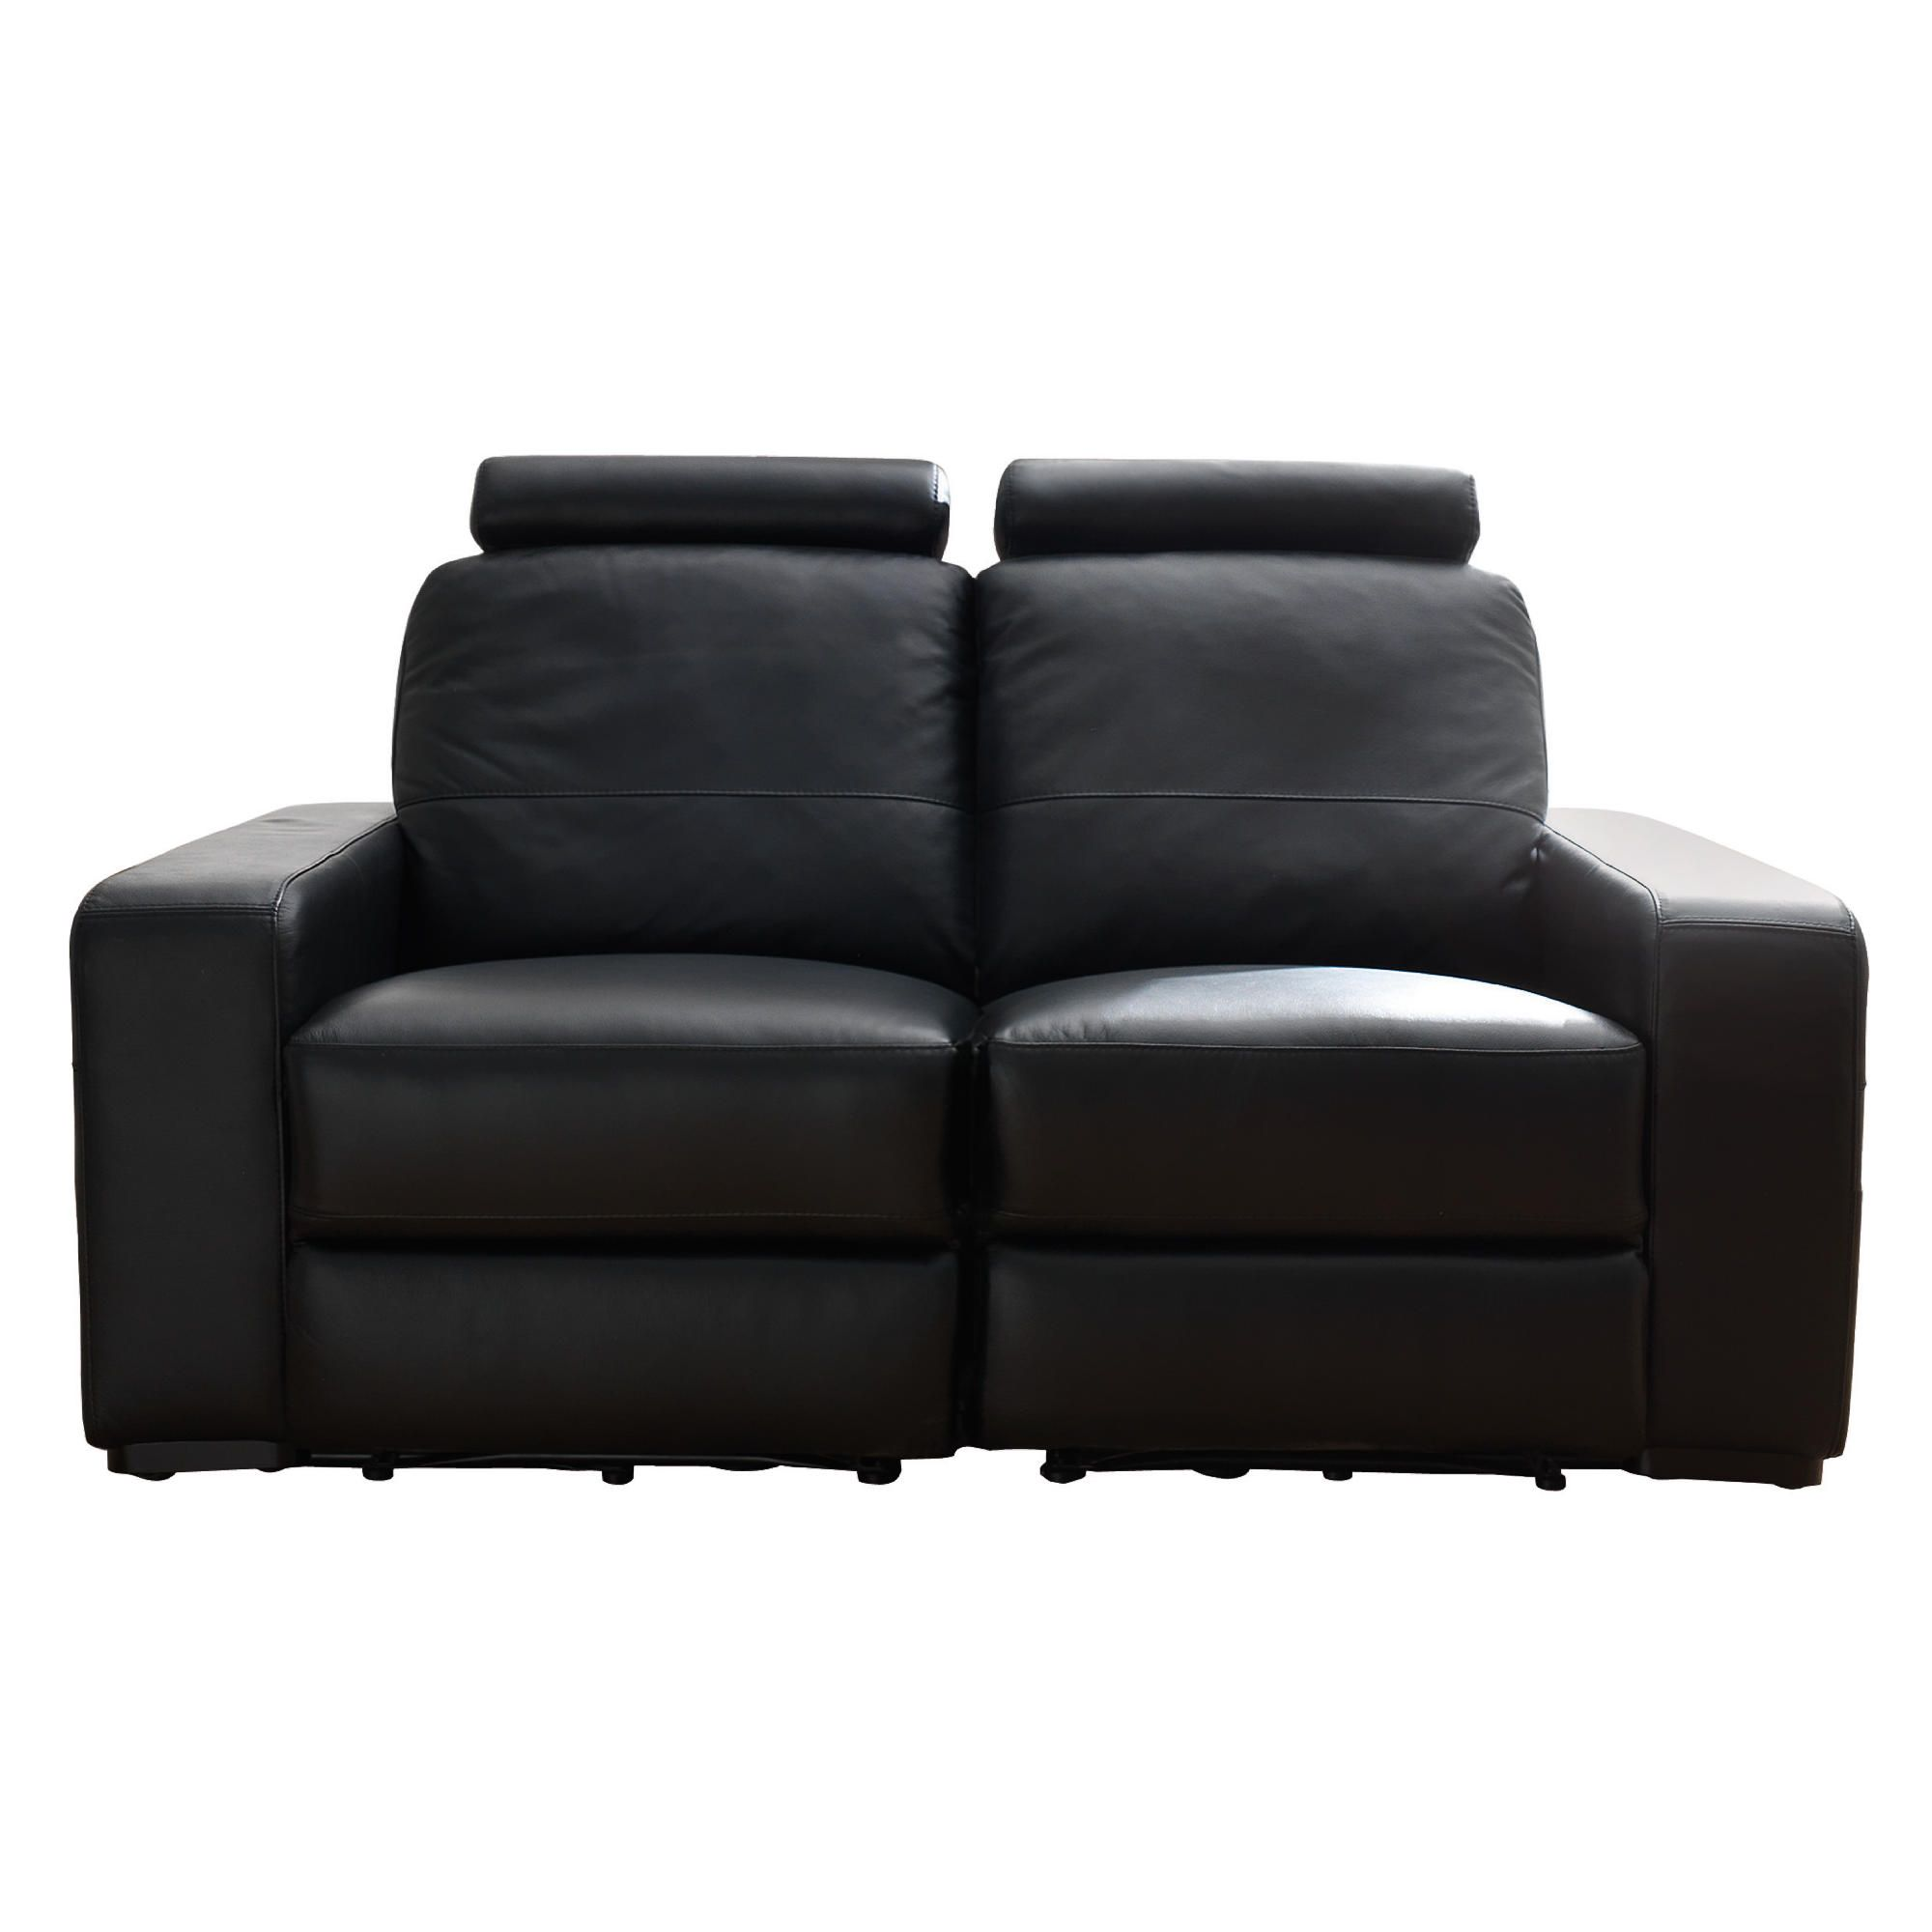 Barcelona Leather Small Recliner Sofa Black at Tesco Direct